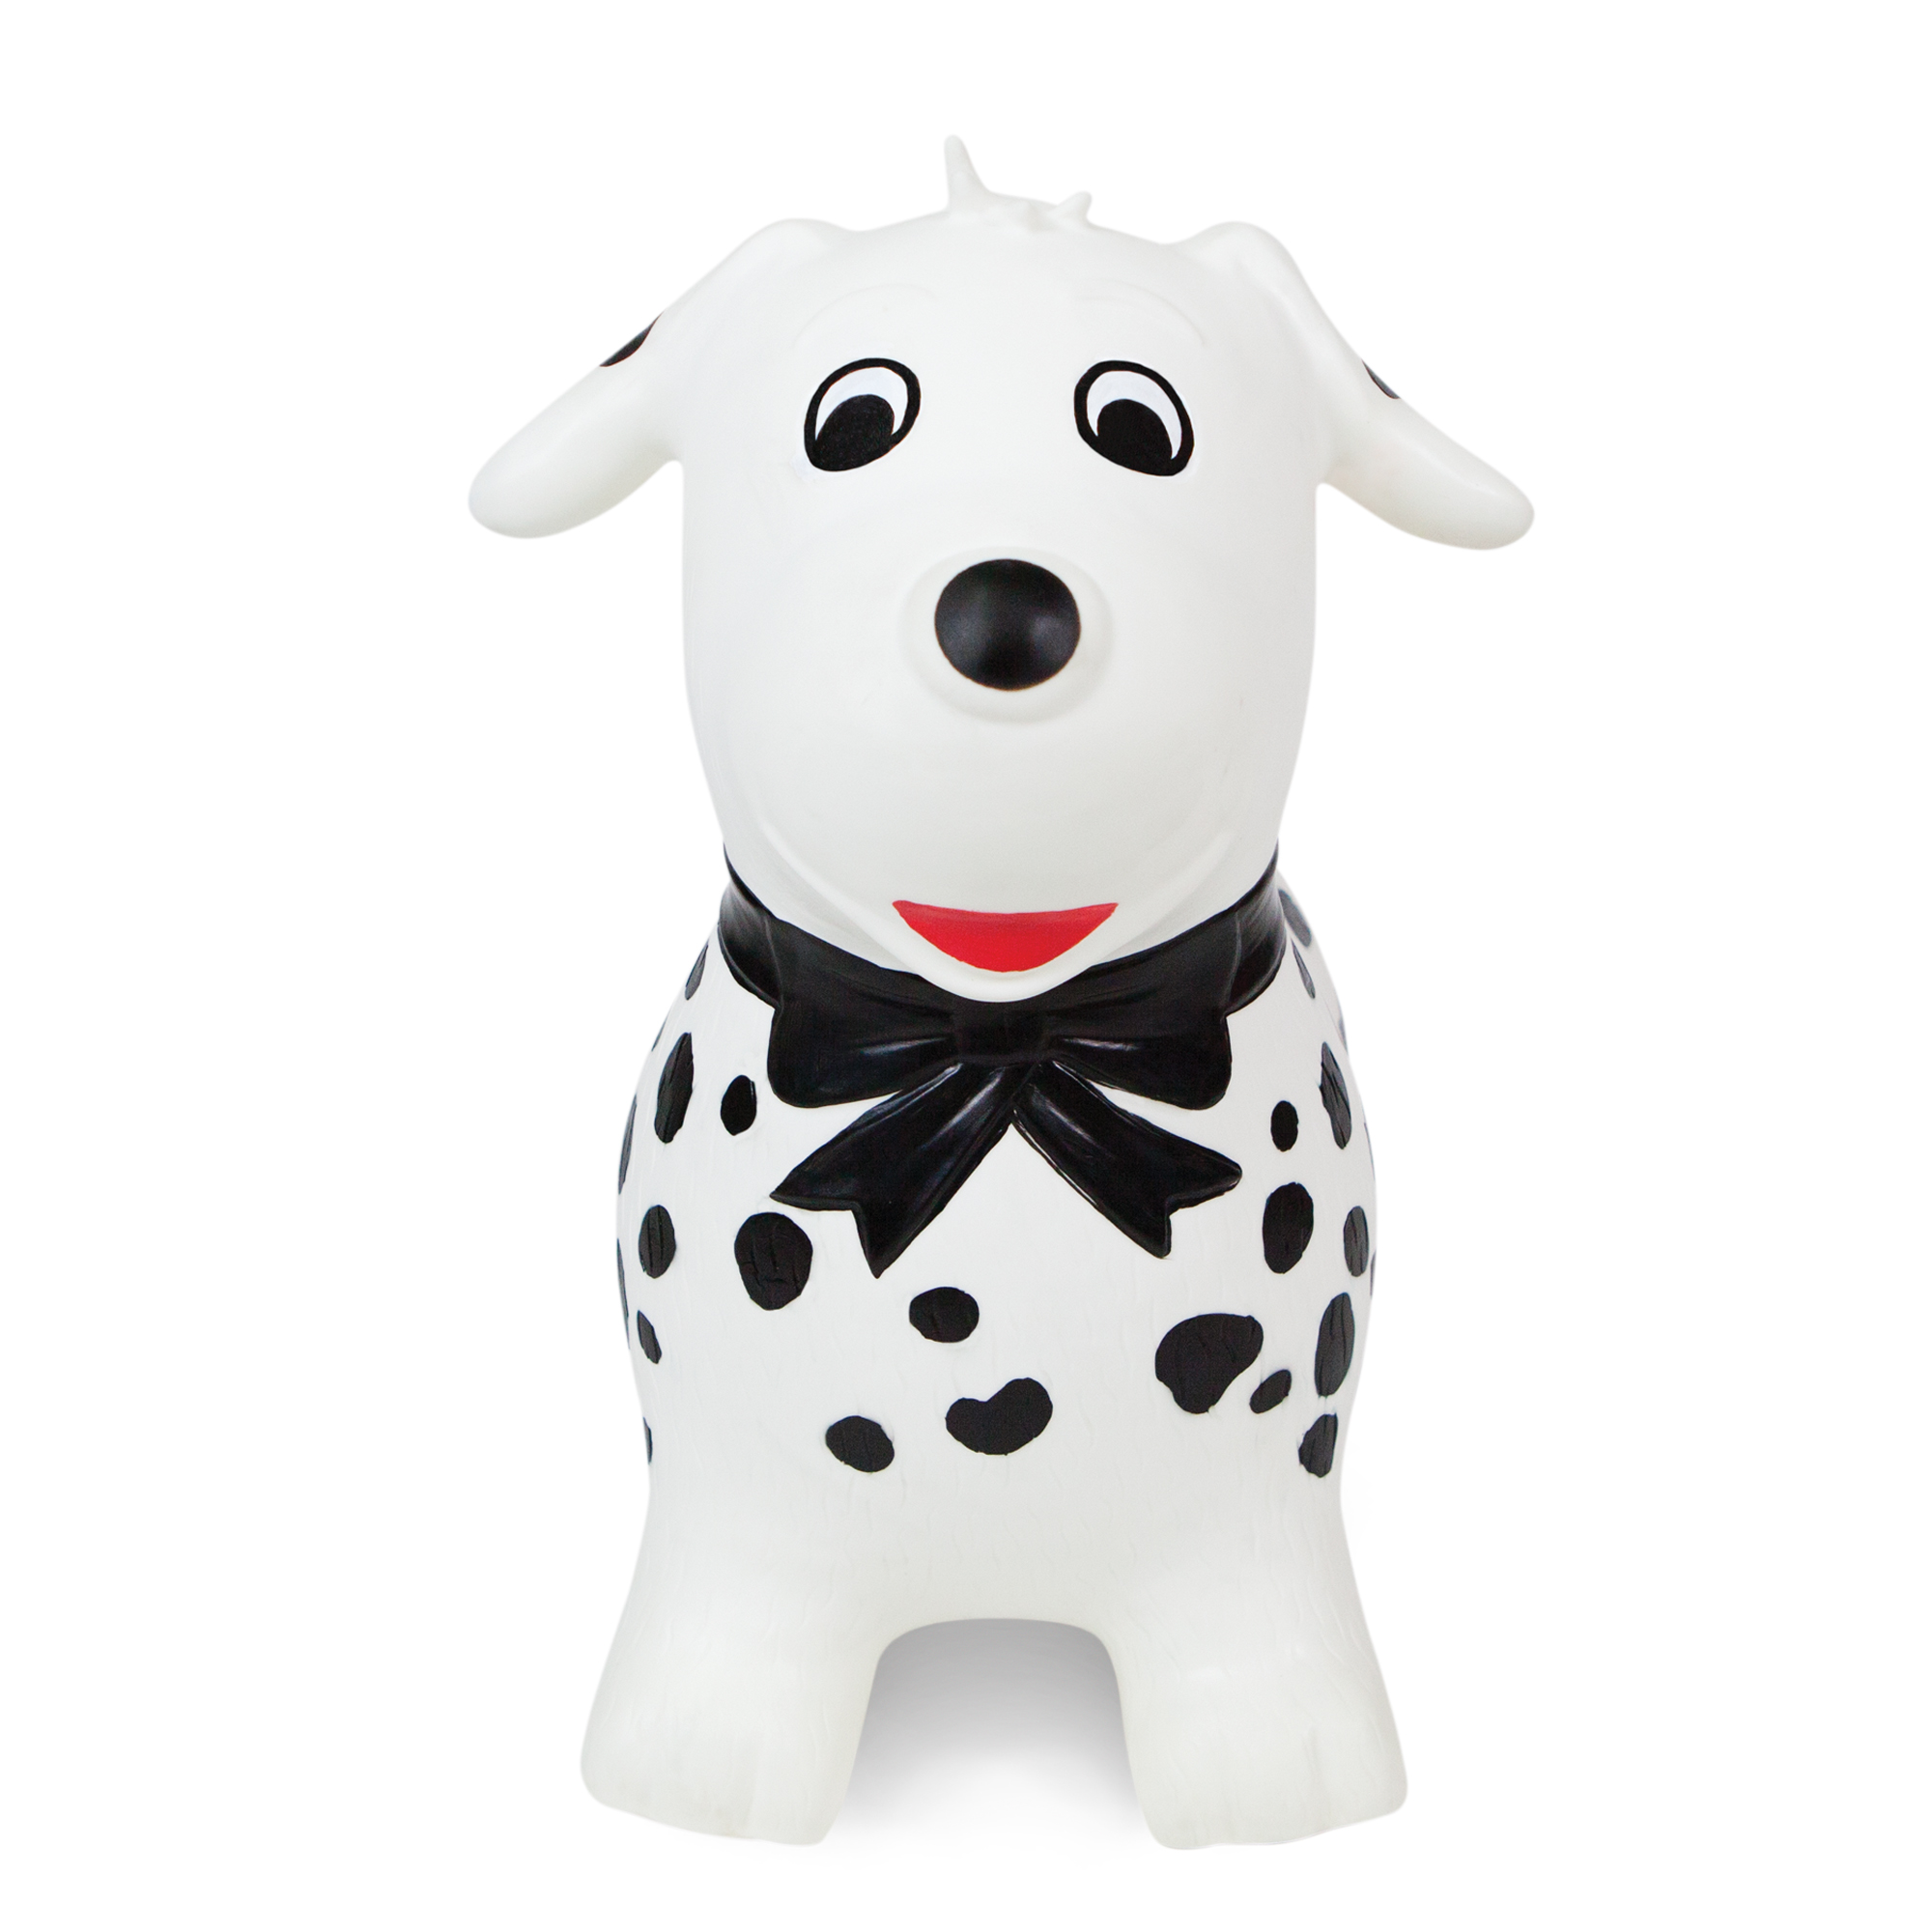 Waddle! Dalmatian Dog Bouncer! Inflatable Ride on Toy (White/Black)